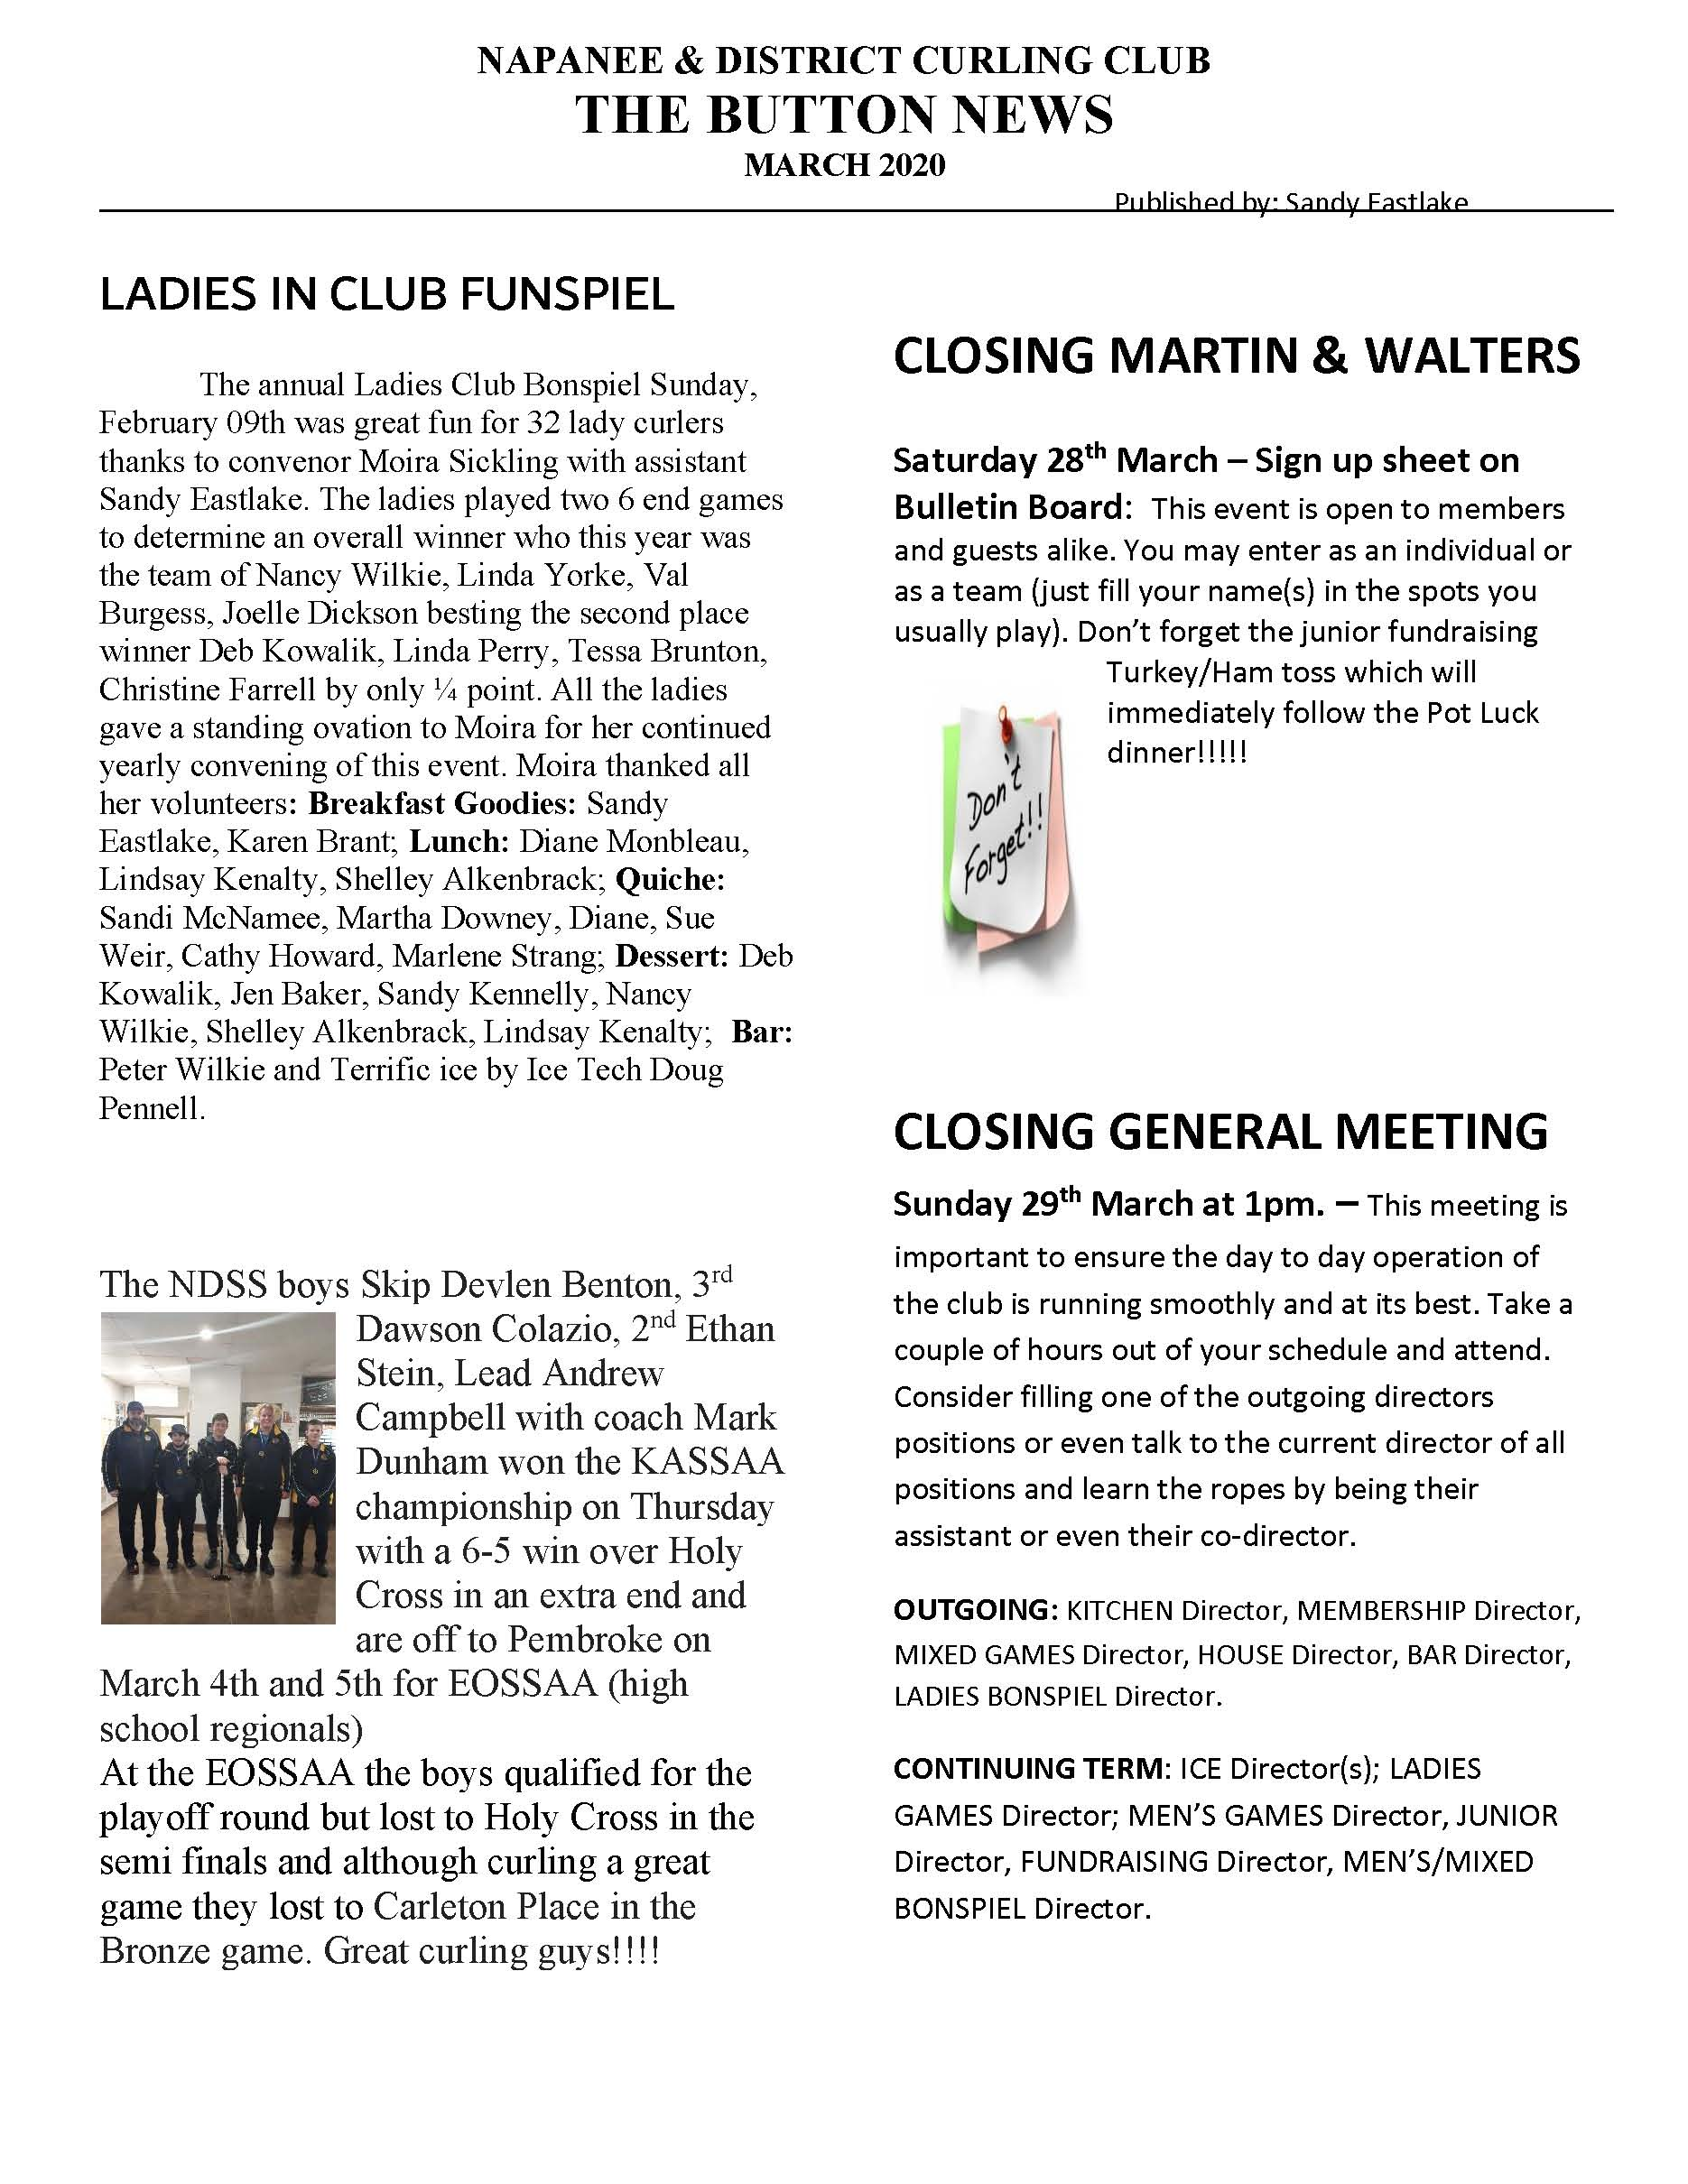 NewsletterMar20 Page 1